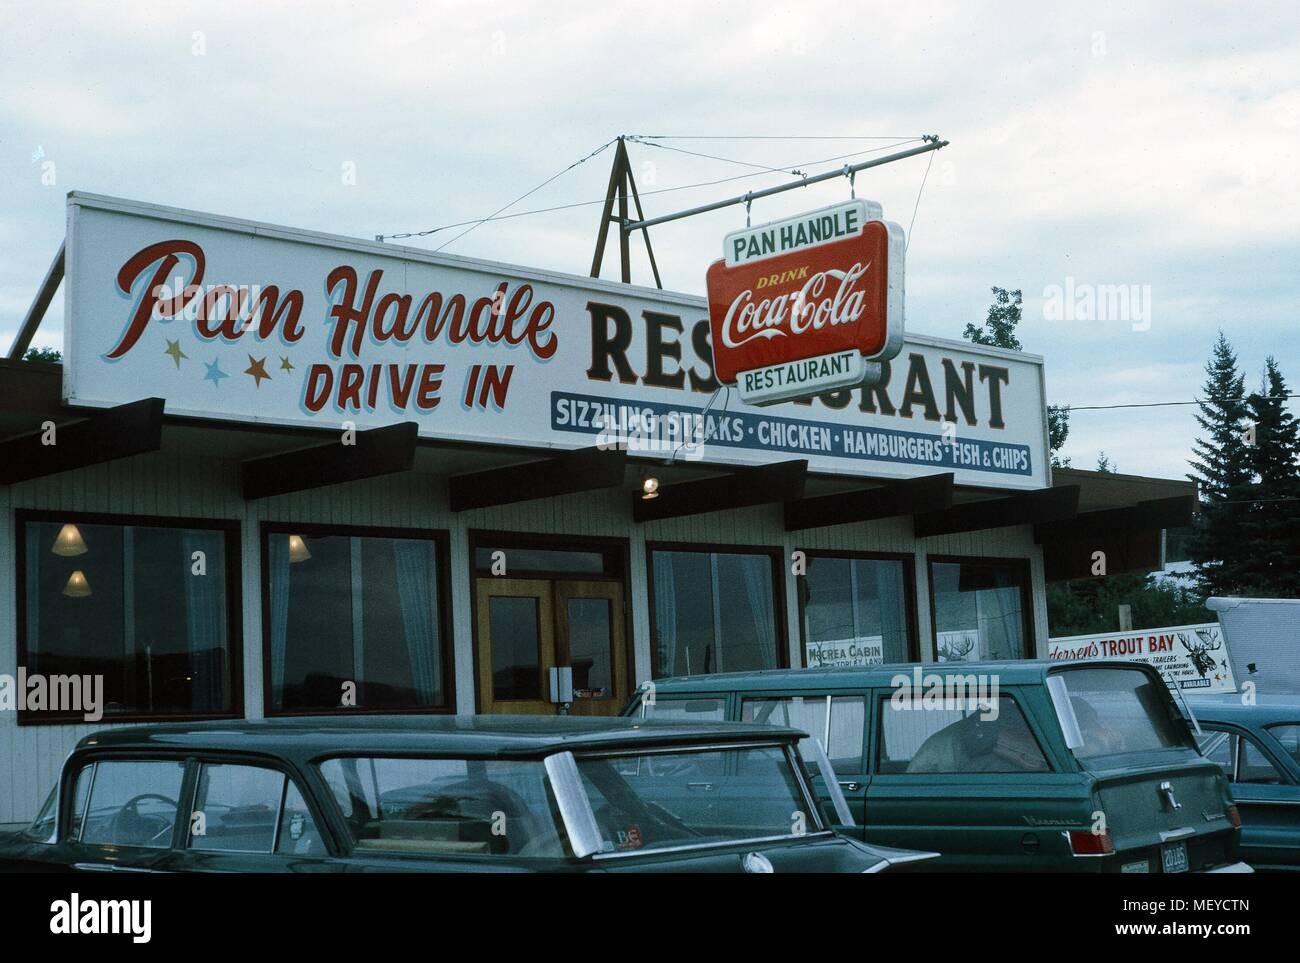 Facade of a classic American drive in restaurant, the Pan Handle Drive In, with cars parked outside and a sign for Coca Cola visible, United States, 1965. () - Stock Image